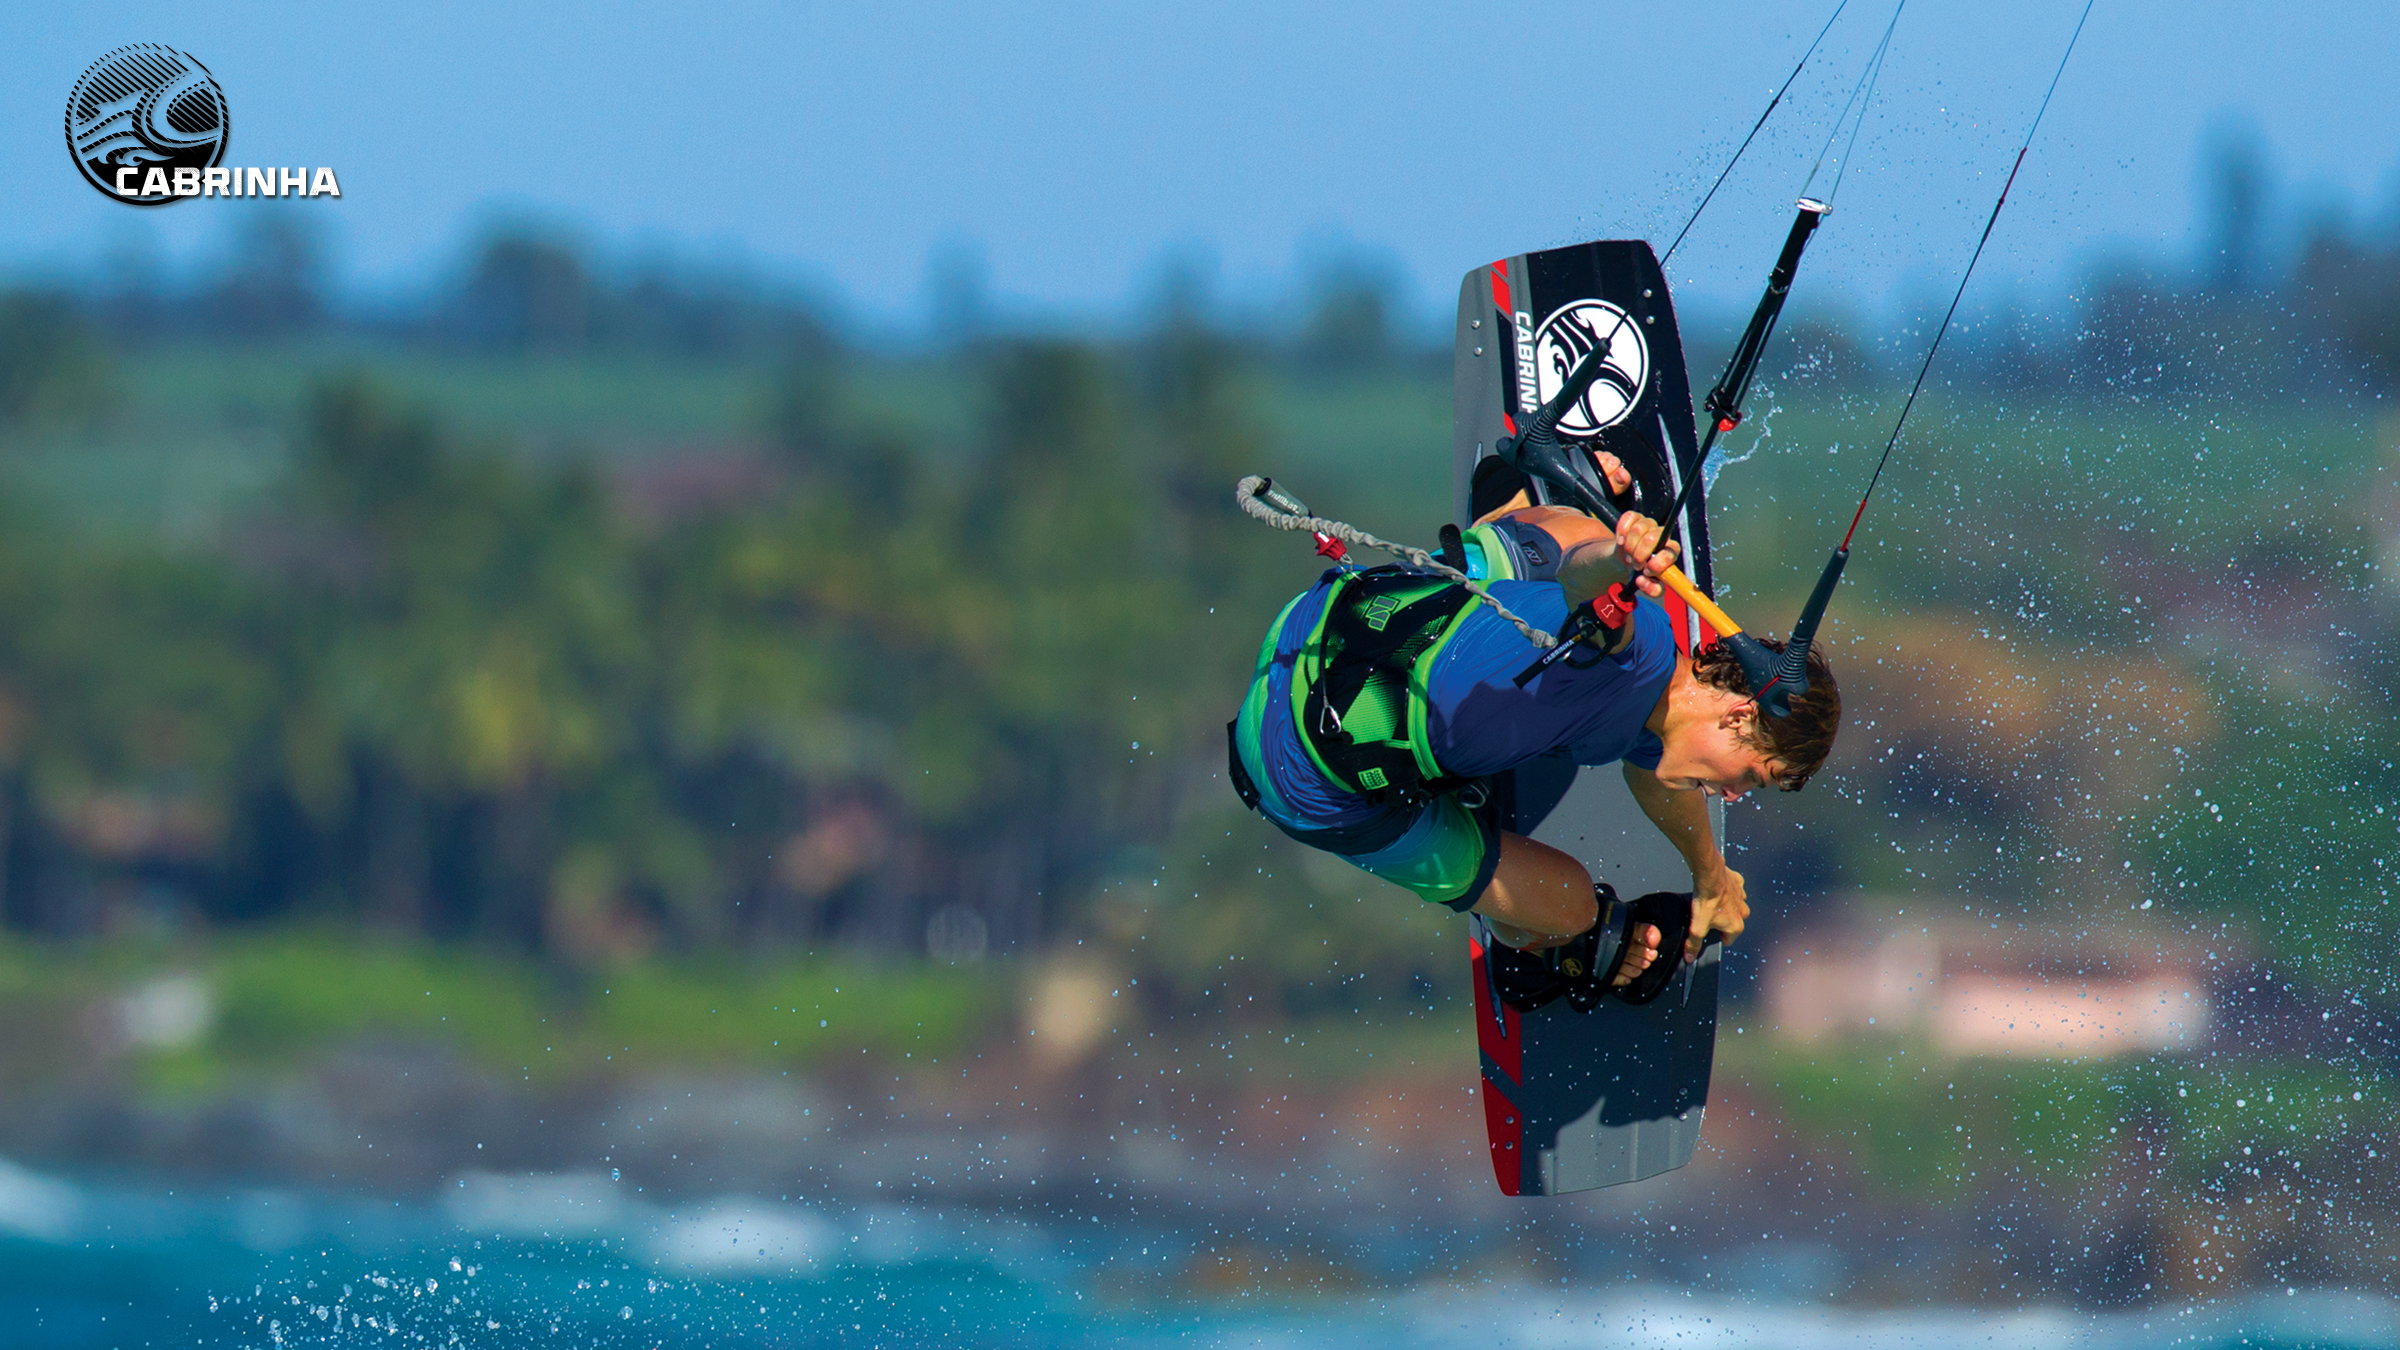 kitesurf wallpaper image - Liam Whaley on the 2015 Cabrinha Ace twintip with a nice board grab. - in resolution: High Definition - HD 16:9 2400 X 1350